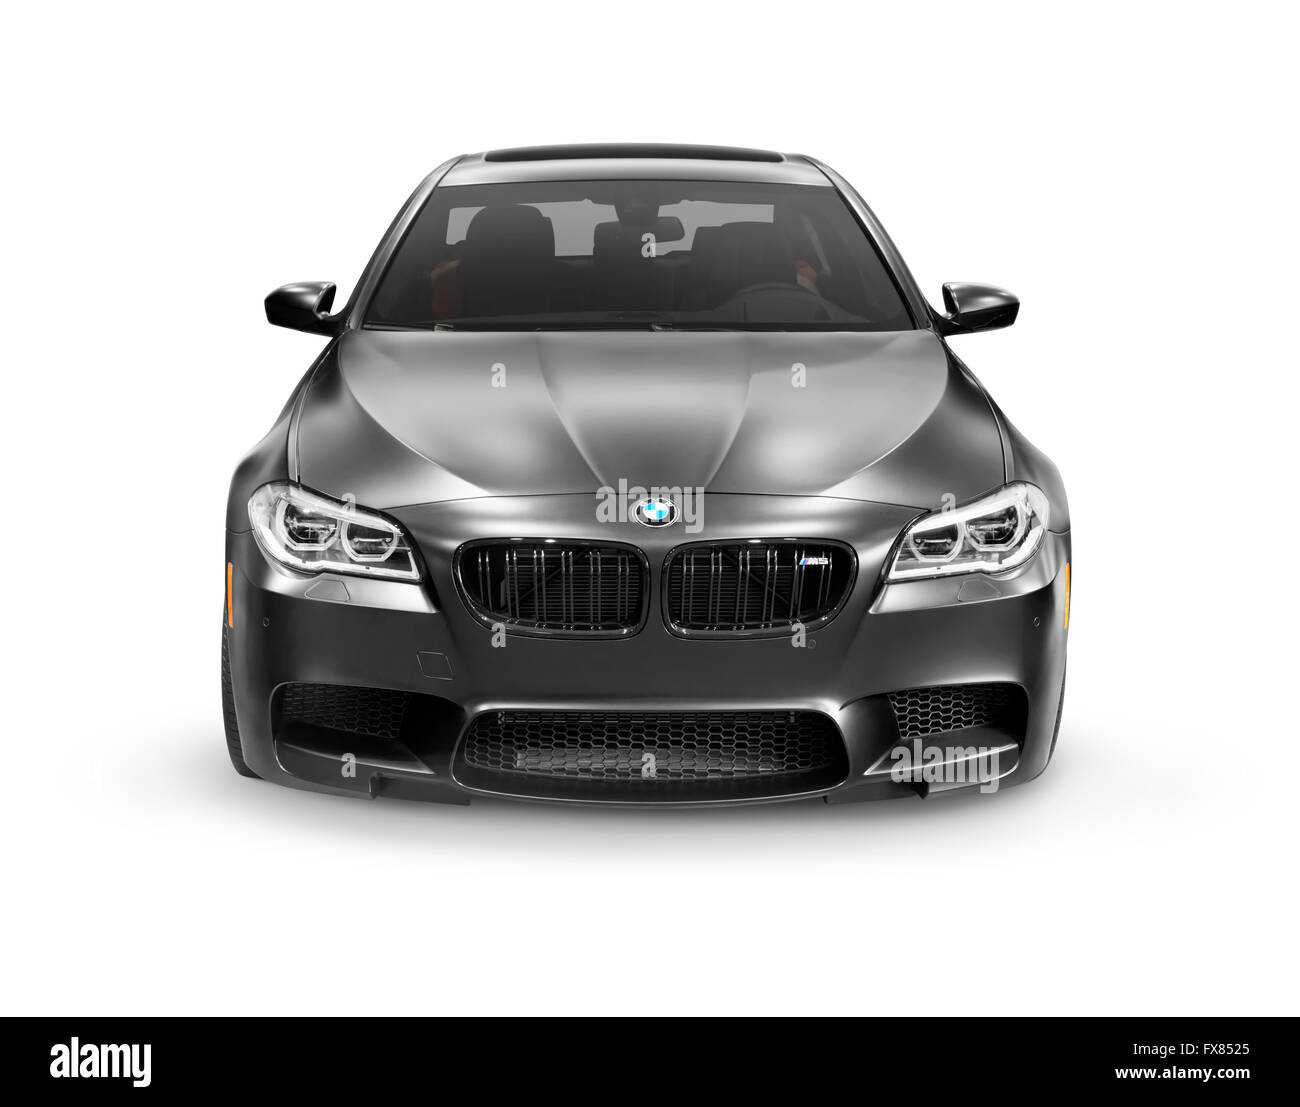 Matte Black Car High Resolution Stock Photography And Images Alamy